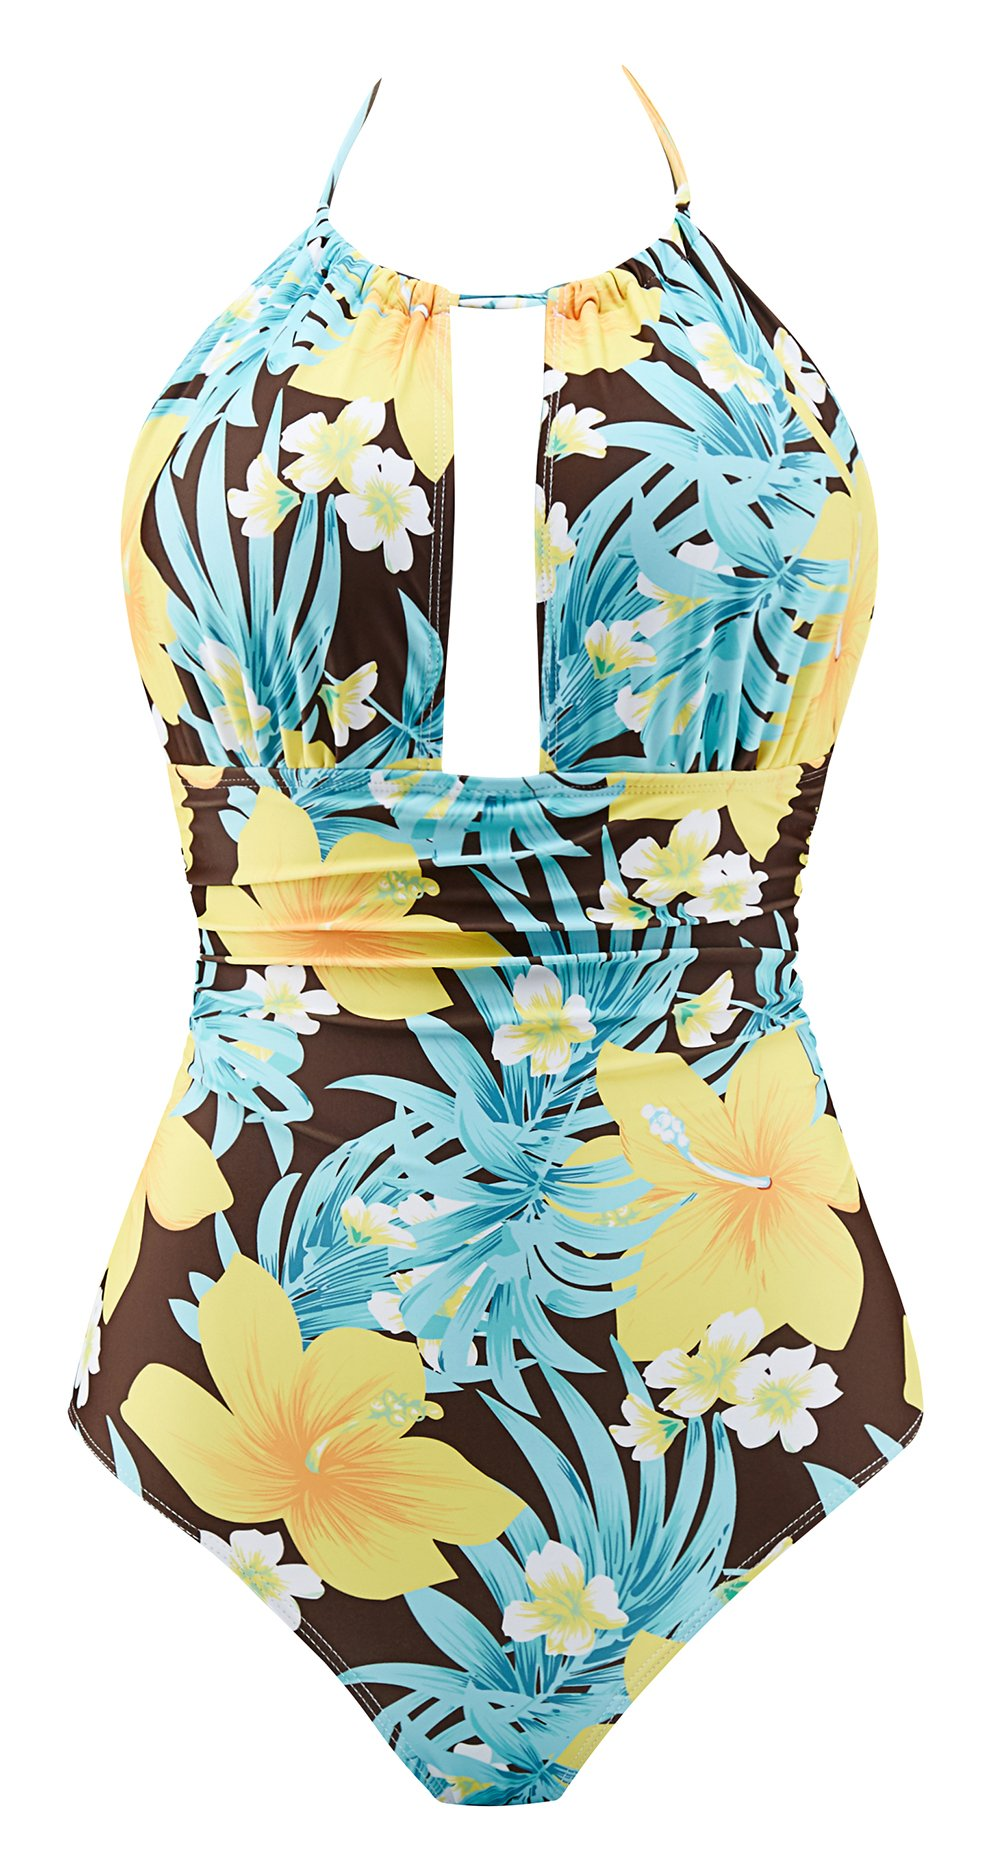 76be65822ed7d Galleon - Eomenie Women's Deep V Neck Bathing Suits Monokini Sexy Tummy  Control Swimwear One Piece Swimsuit For Women (L/US:12-14, Print #22)